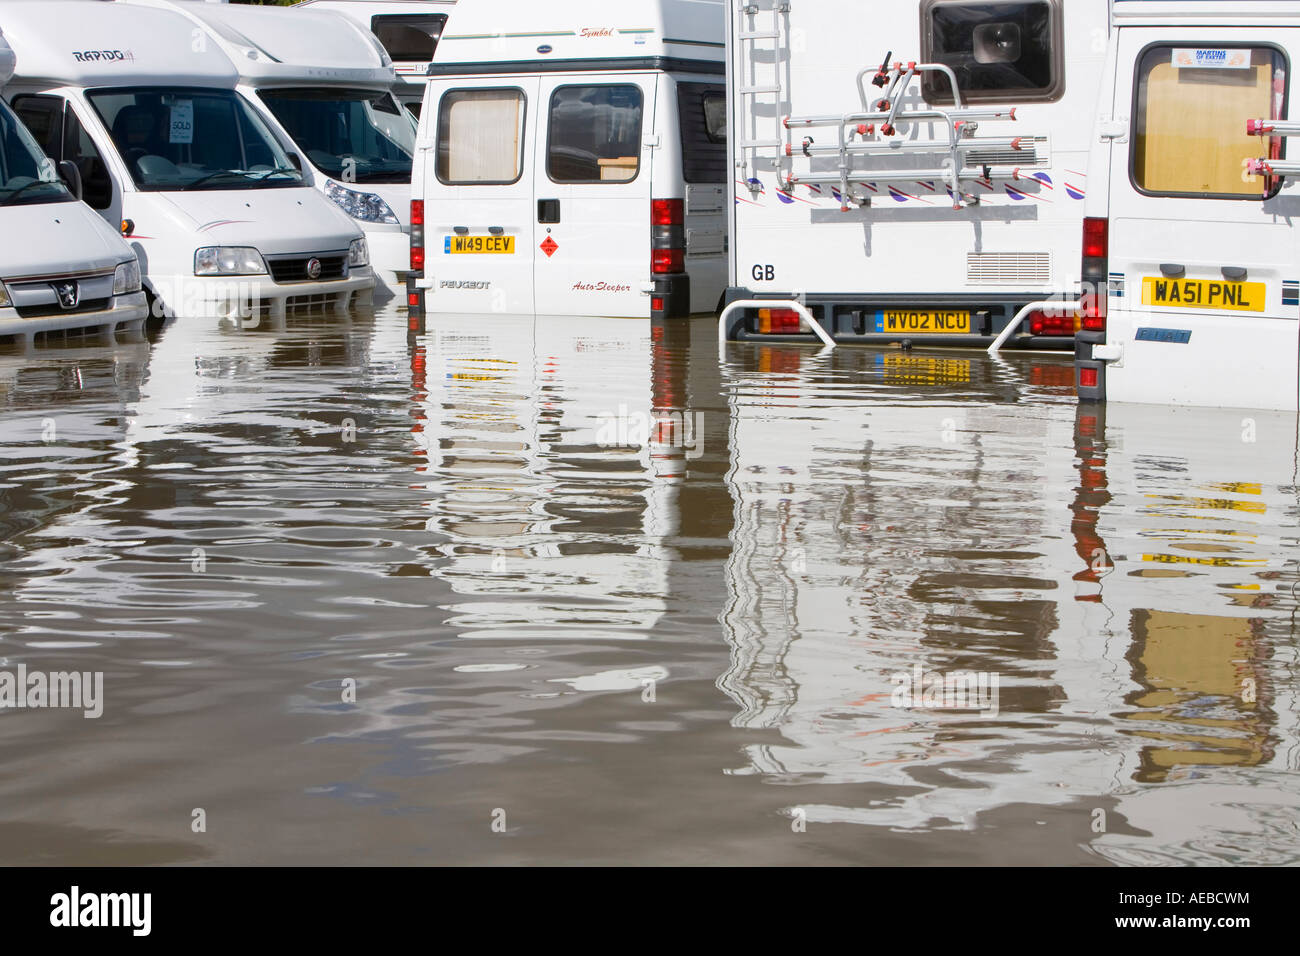 The Tewkesbury floods in summer 2007 - Stock Image